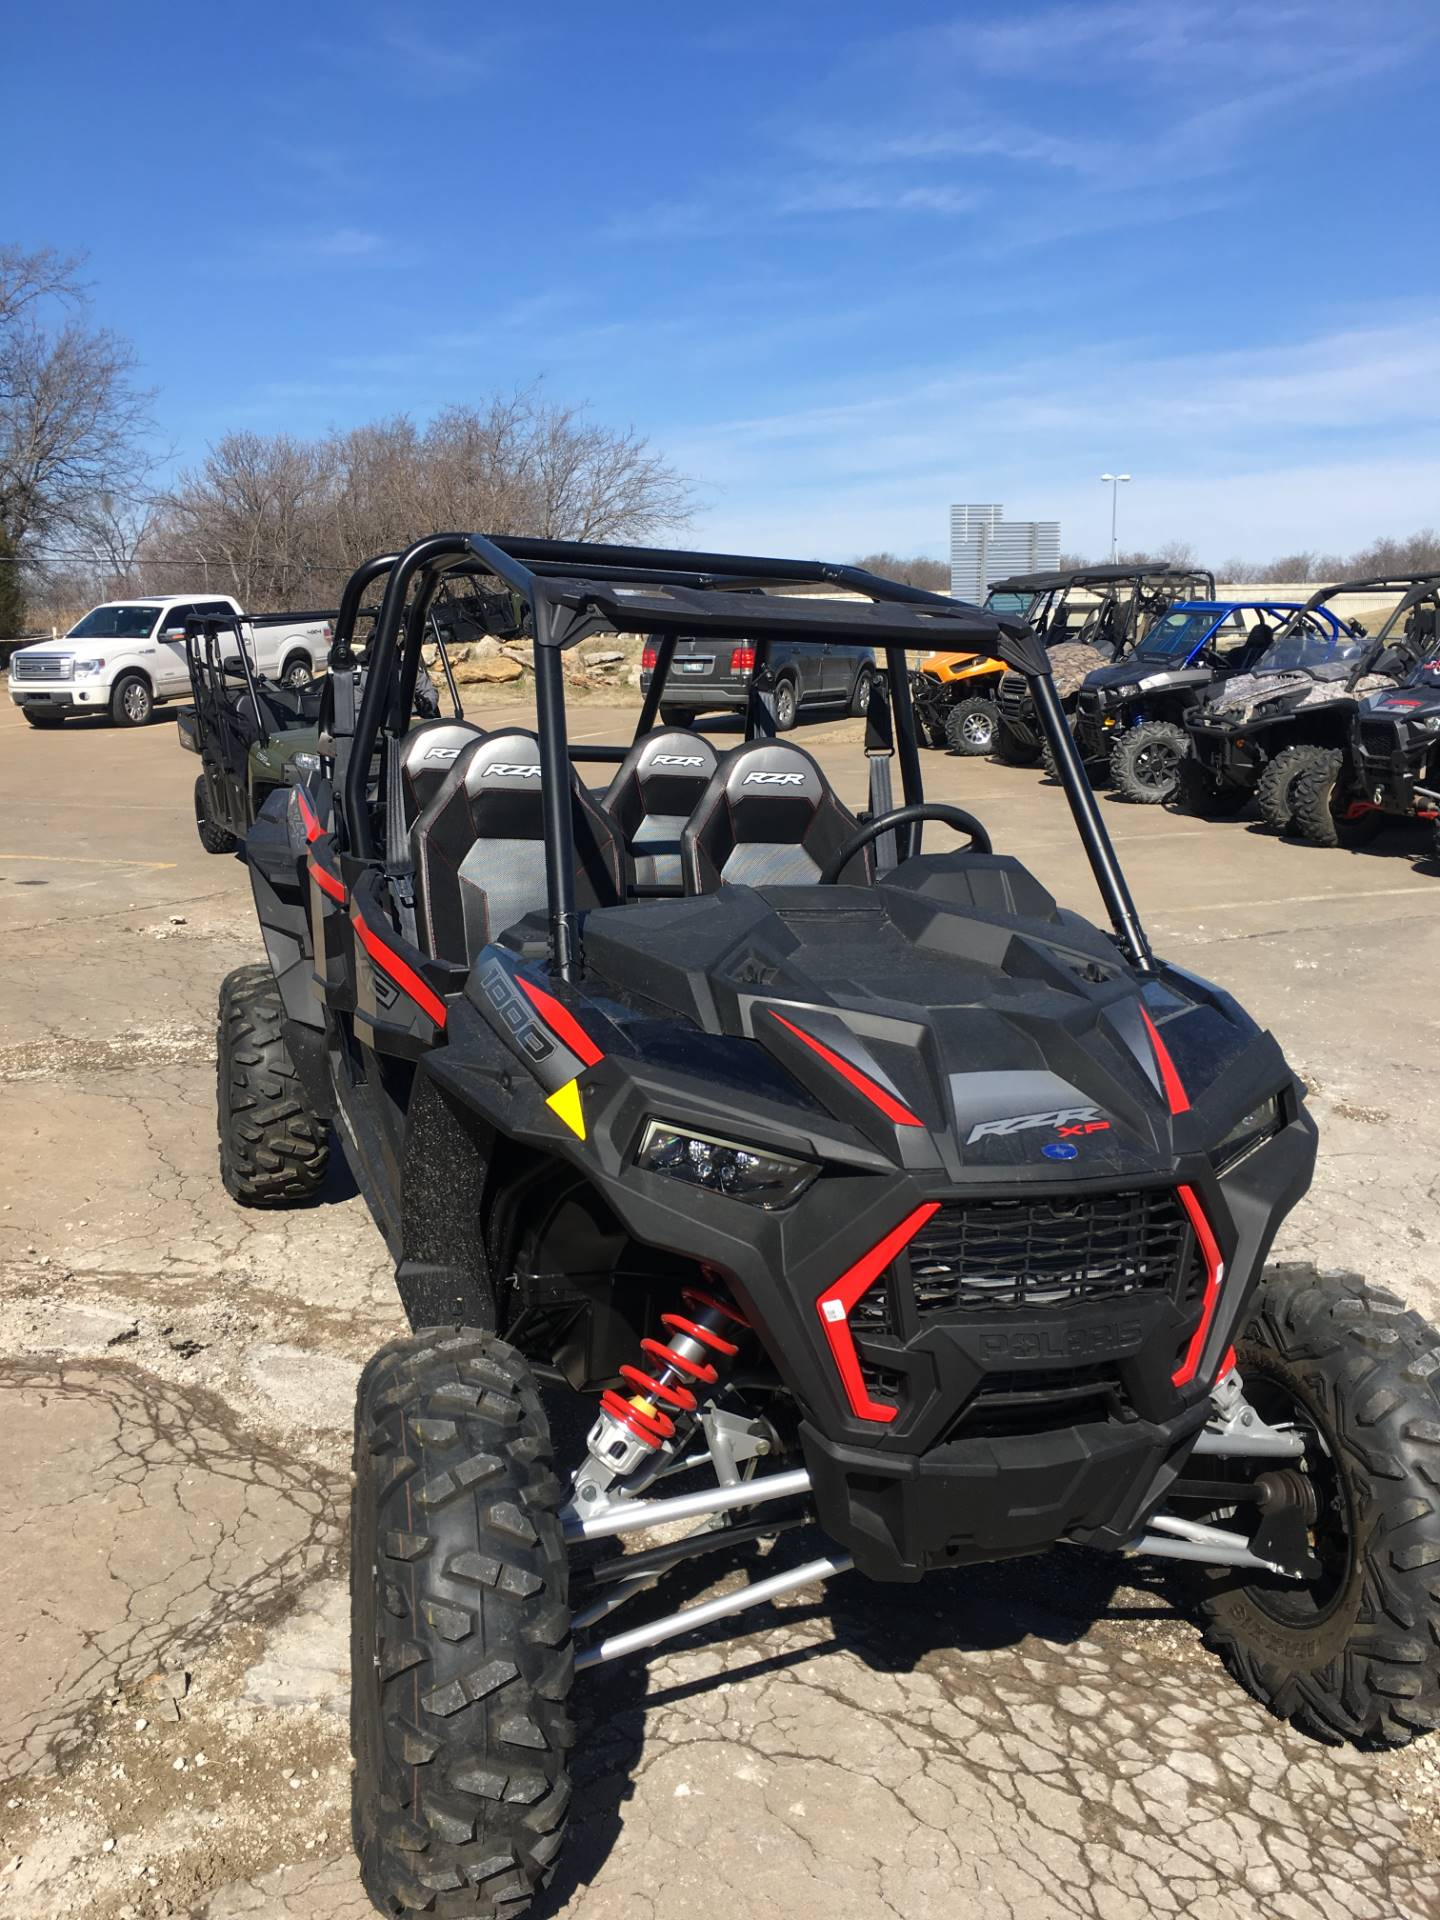 2019 Polaris RZR XP 4 1000 EPS in Broken Arrow, Oklahoma - Photo 4